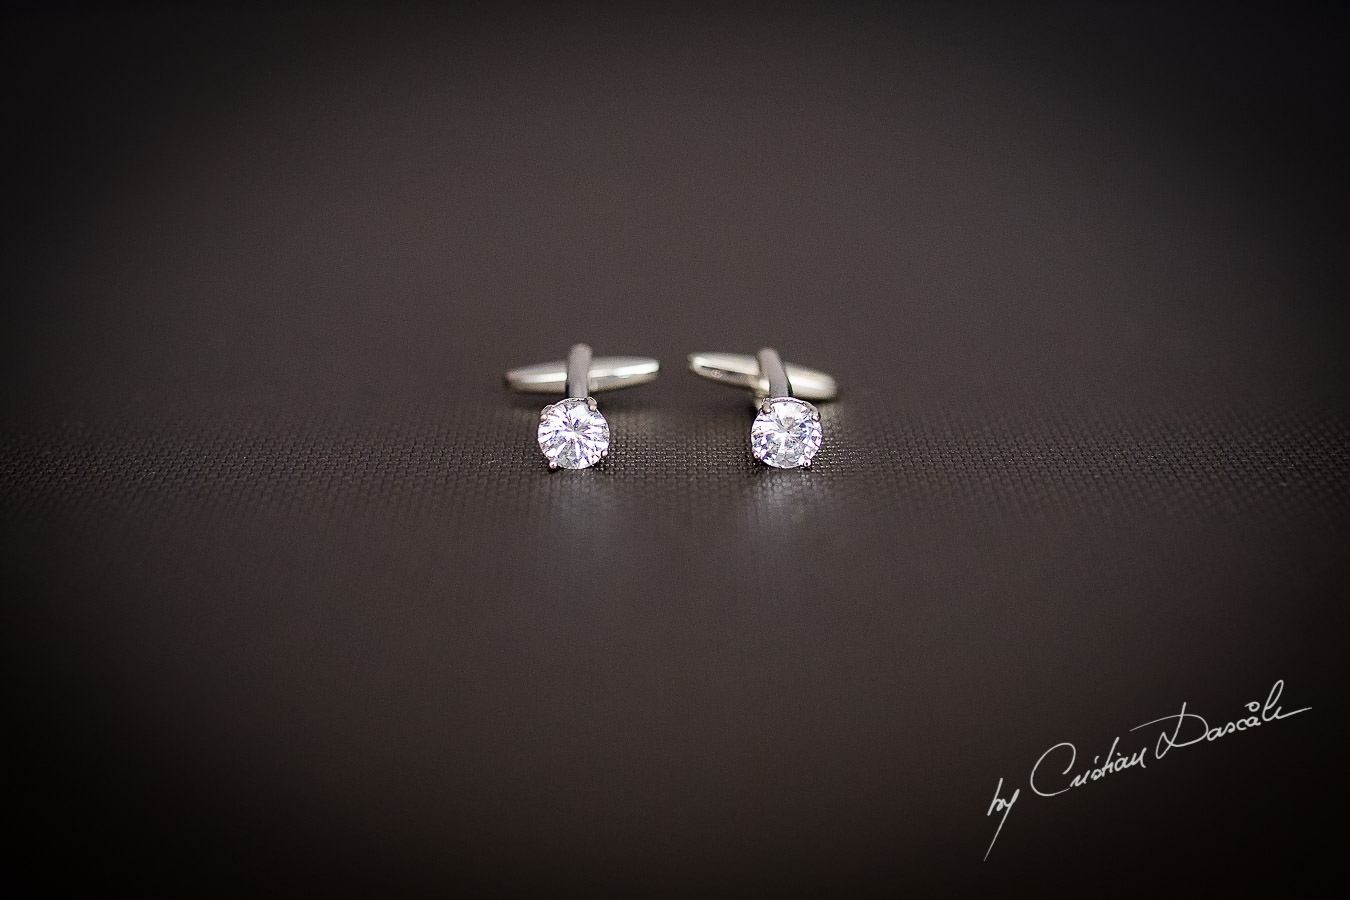 Groom's cuff-links captured during an Exquisite Wedding at Asterias Beach Hotel by Cyprus Photographer Cristian Dascalu.